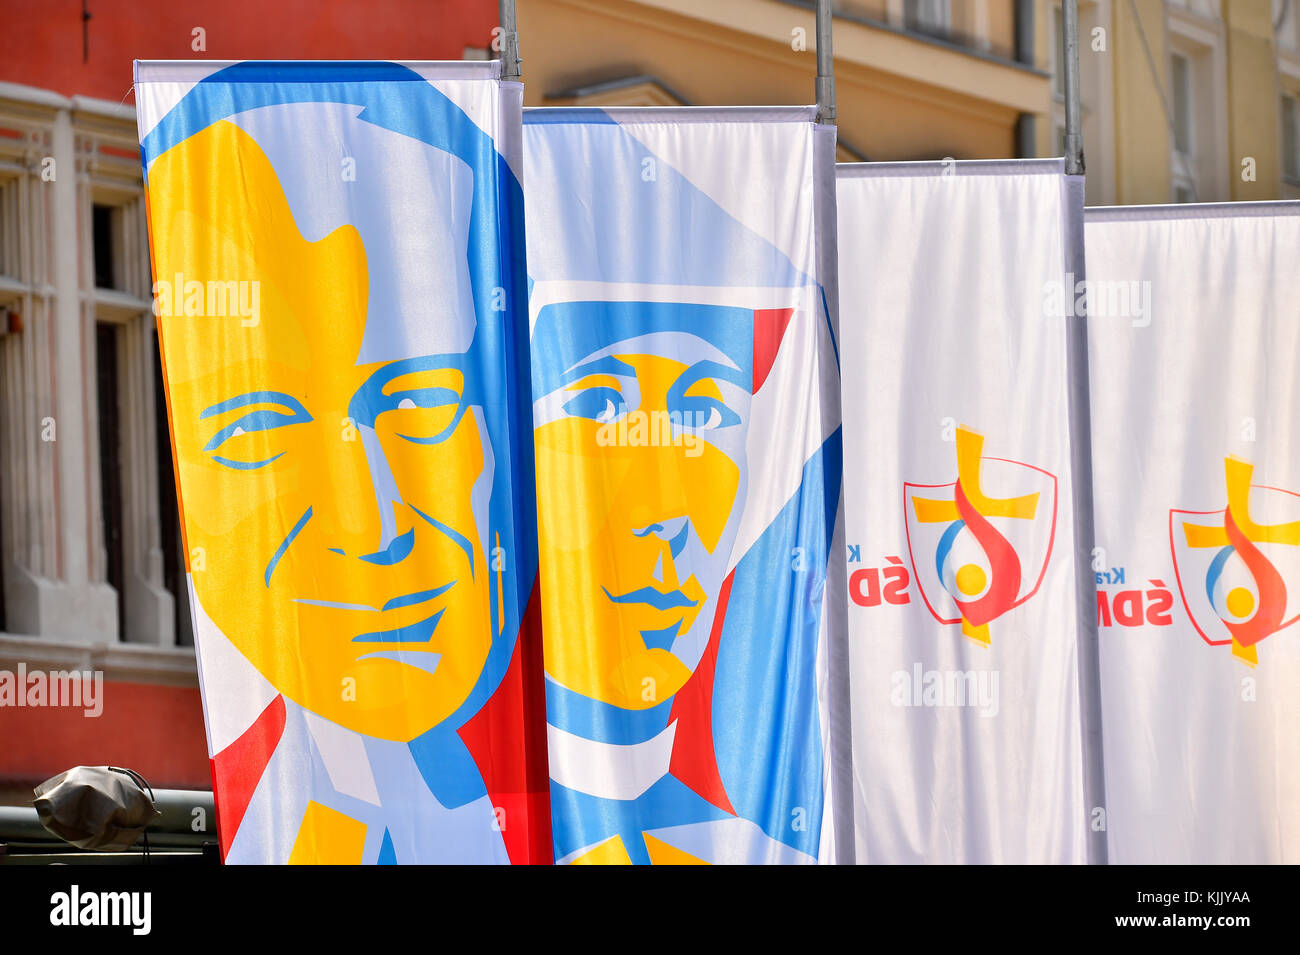 World Youth Day. Krakow. 2016. Banners. Poland. - Stock Image